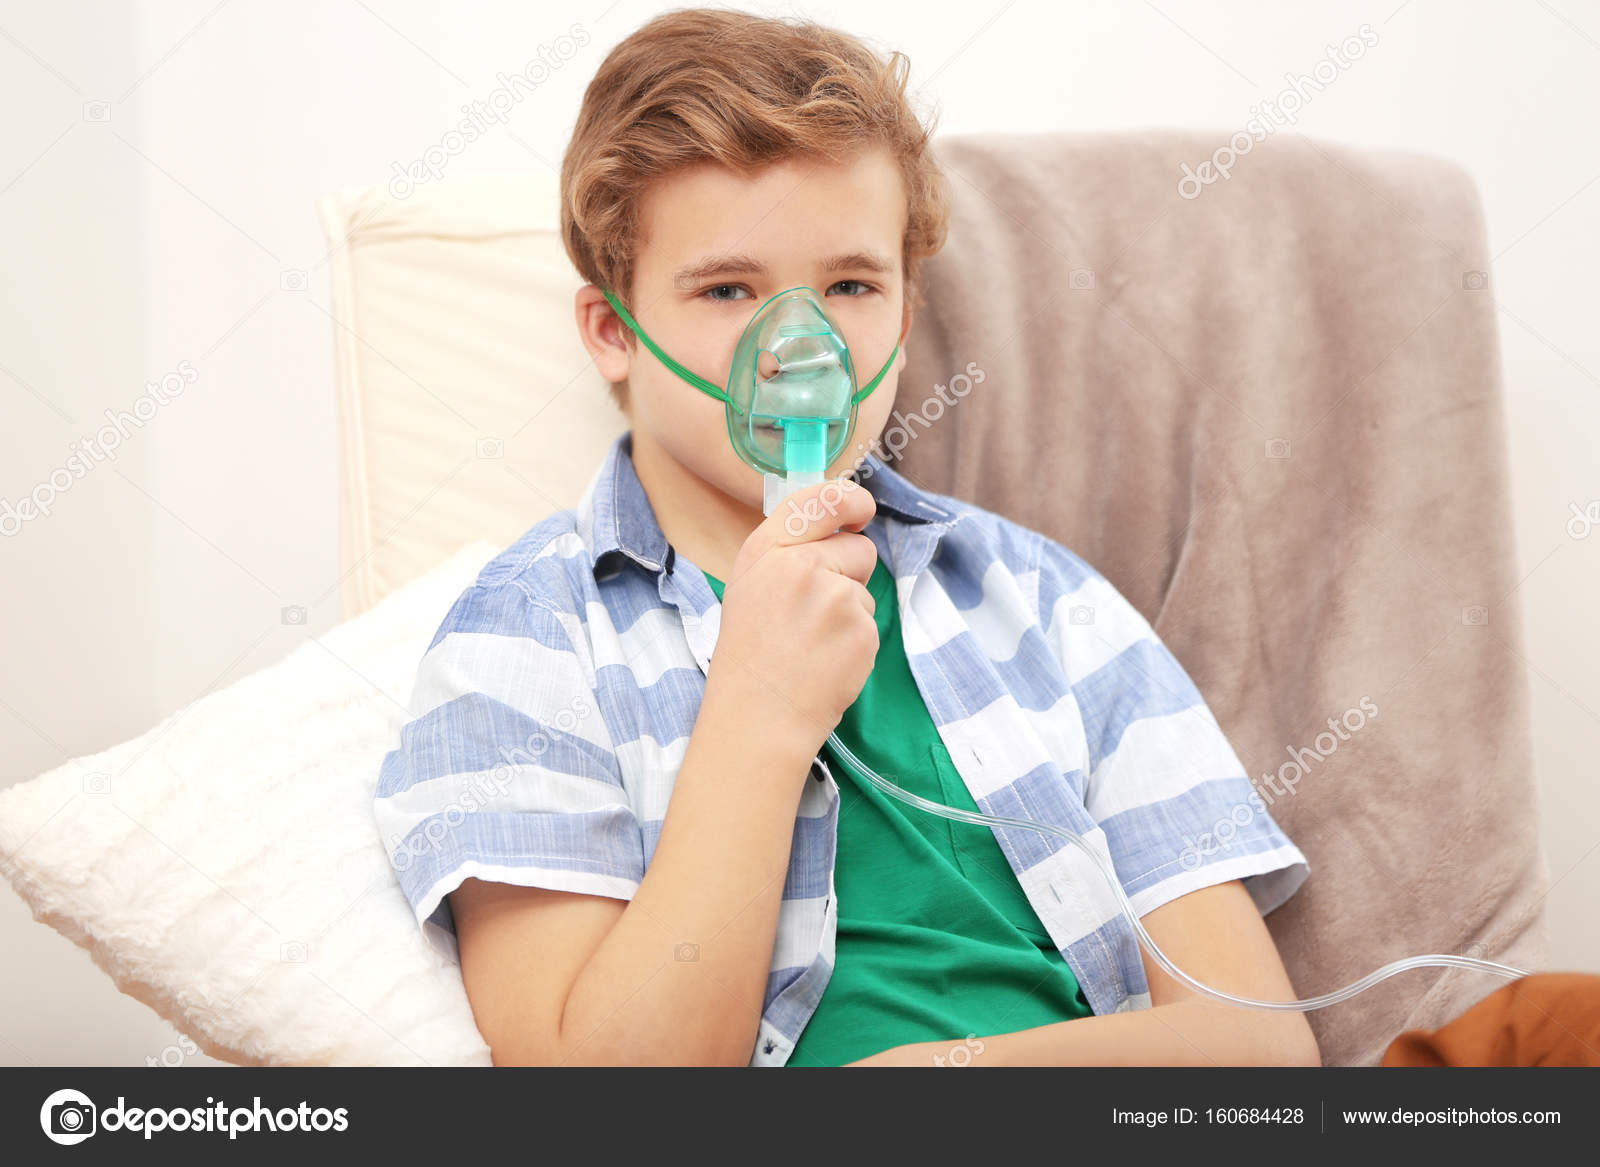 my experience with soccer and asthma Soccer (also called football, especially in other countries) is the most popular sport in the world and is played in most countries it is a team sport, involving 11 players on each side who use their legs, head and torso to pass a ball and score goals.